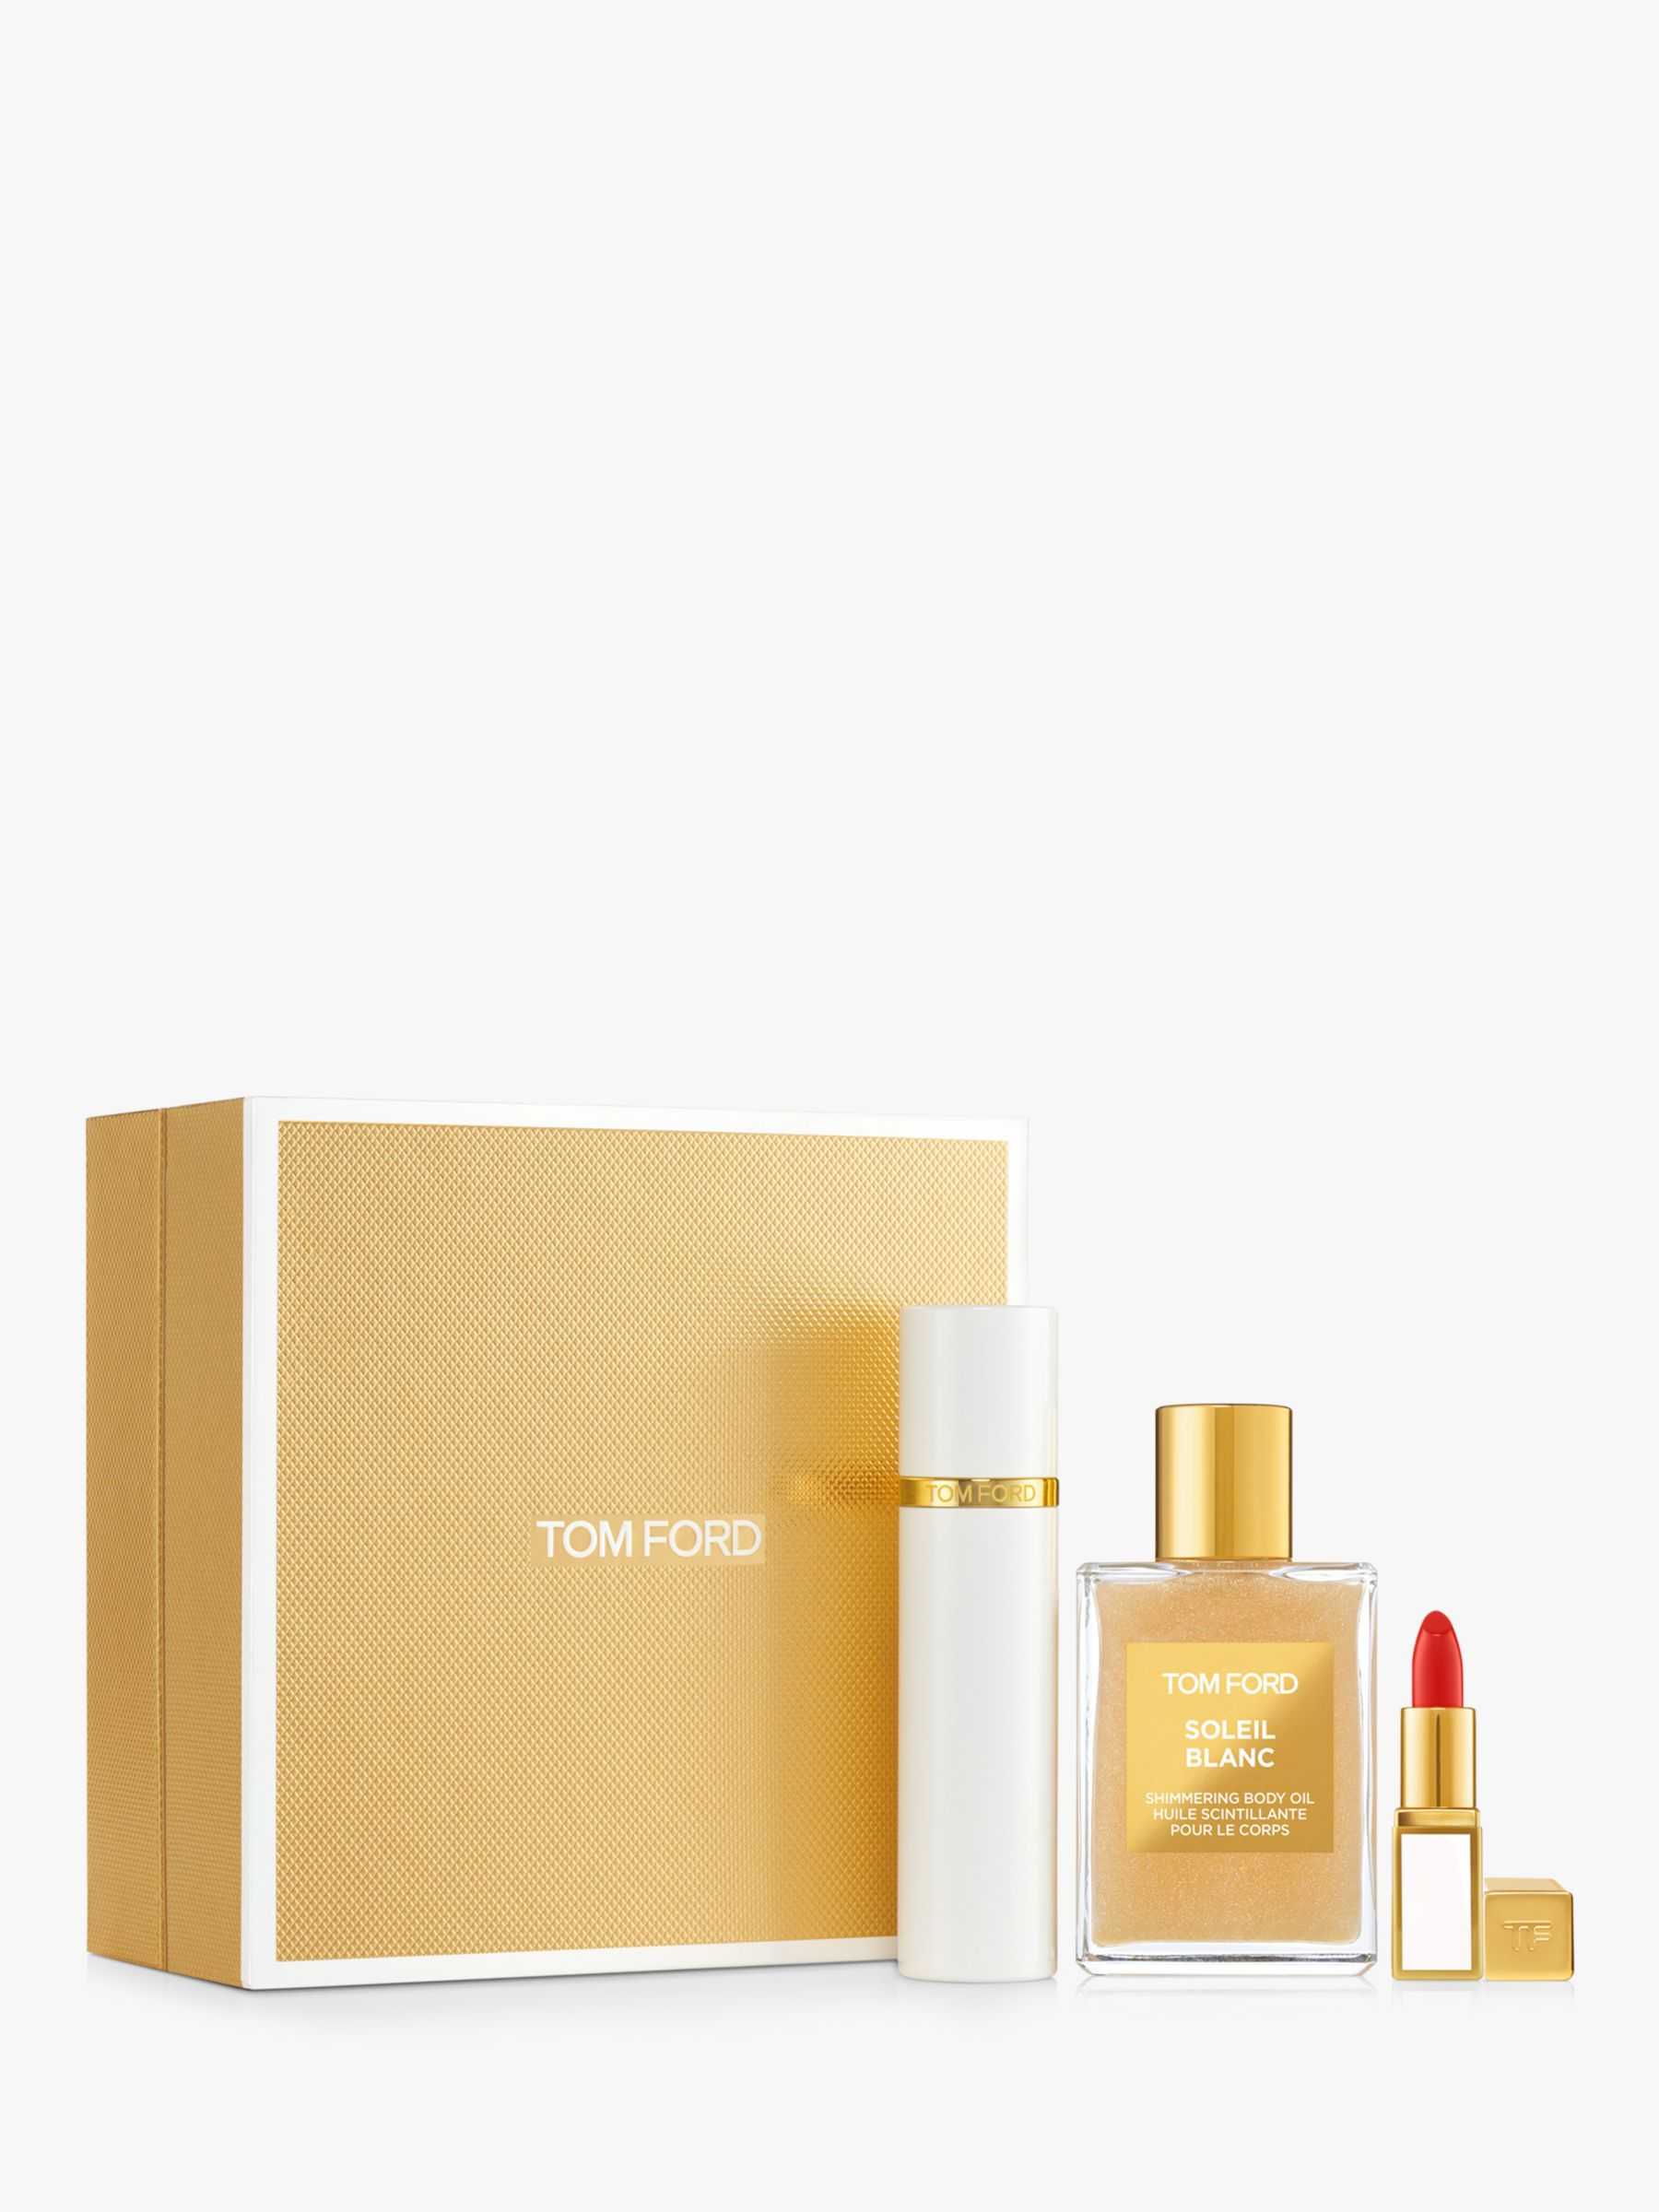 Tom Ford Soleil Blanc Shimmer Colour Travel Fragrance Gift Set At John Lewis Partners